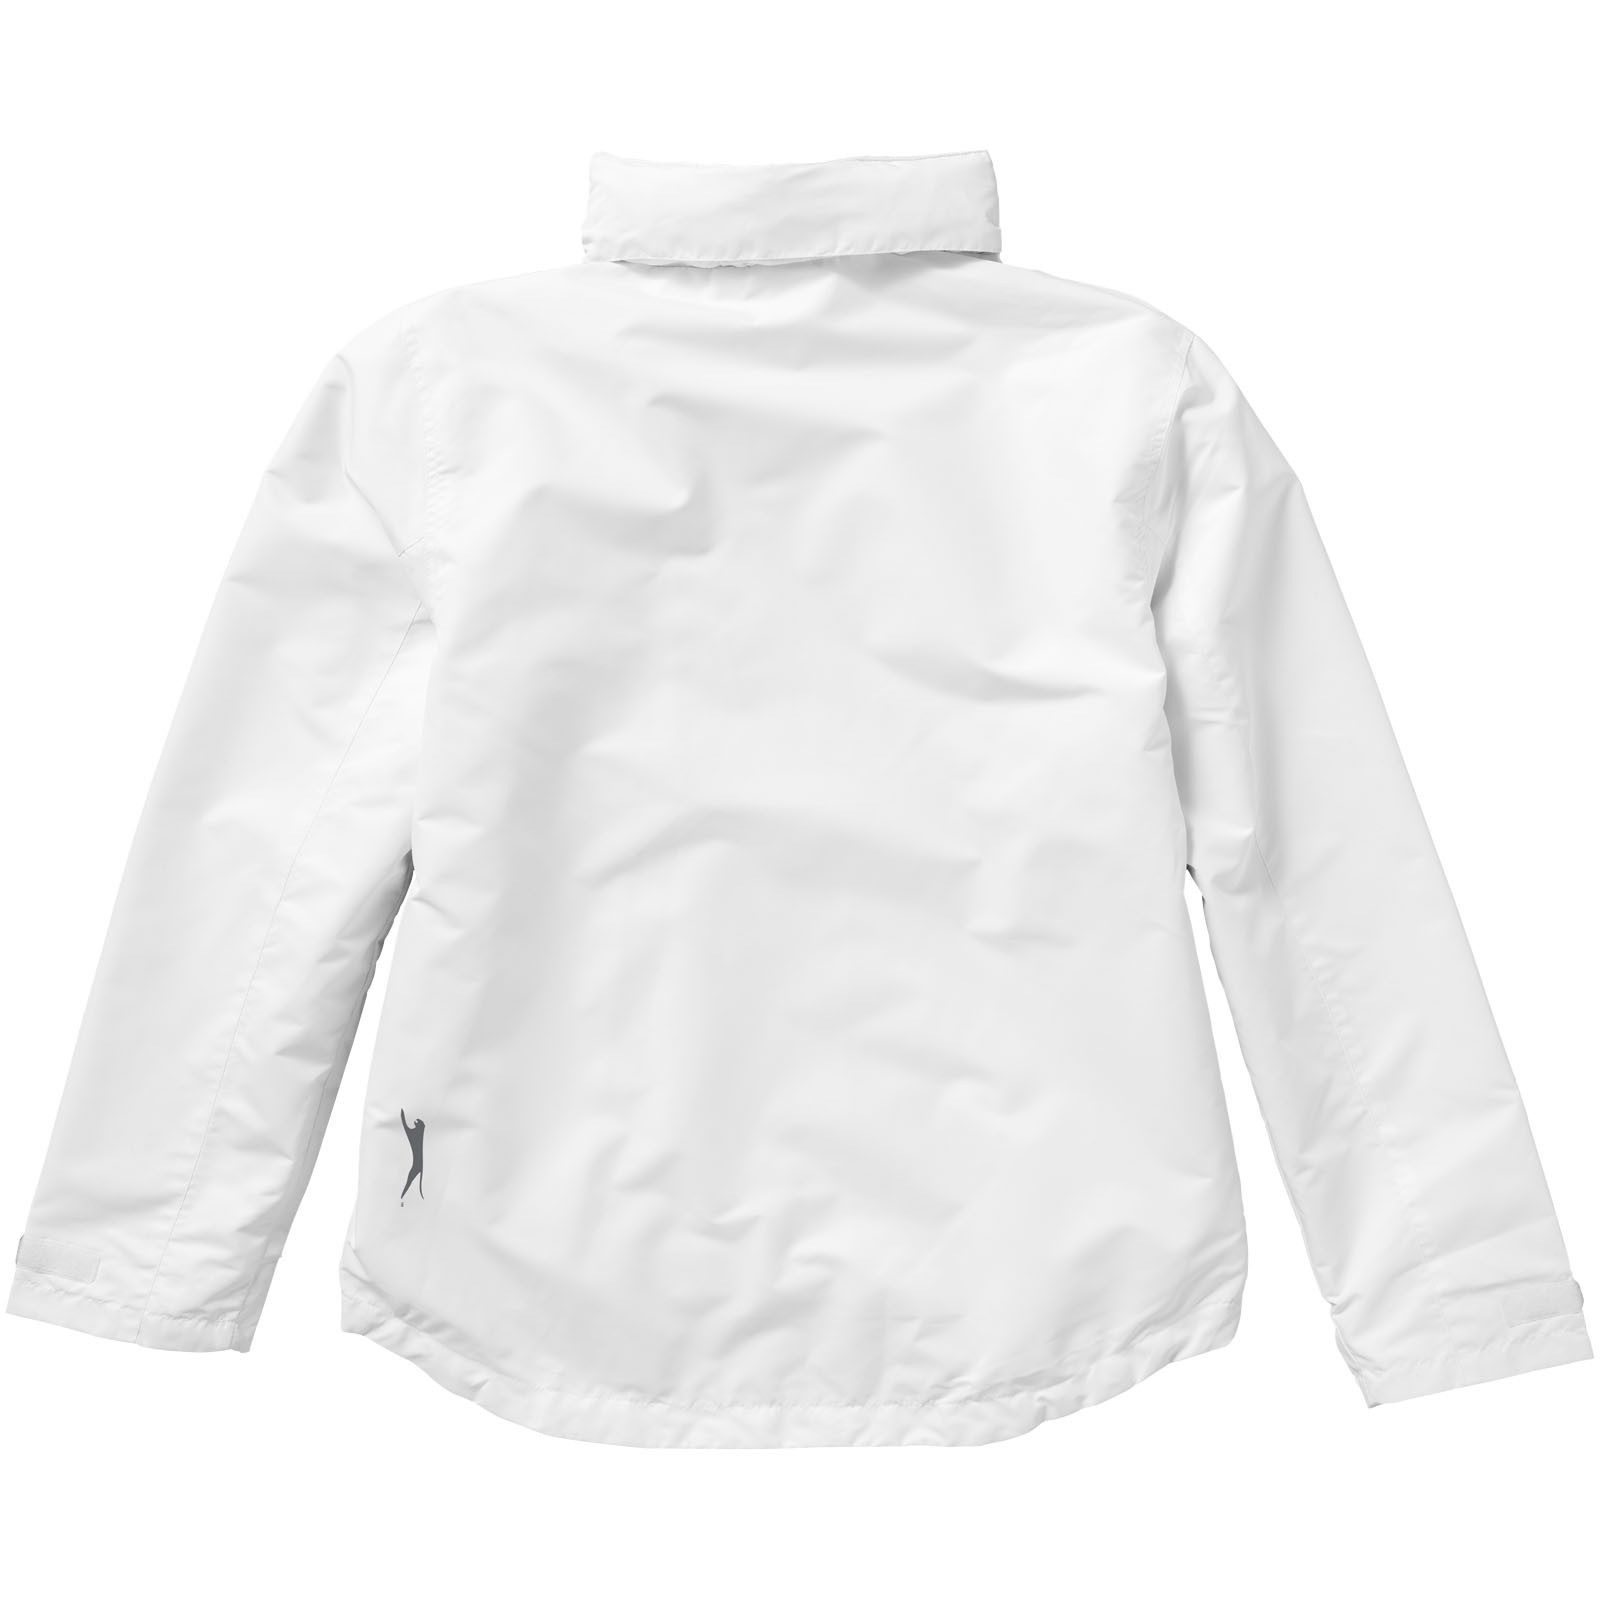 6f934de34a Top Spin lds Jacket,Wht,XL (jacket) - Reklámajándék.hu Ltd.